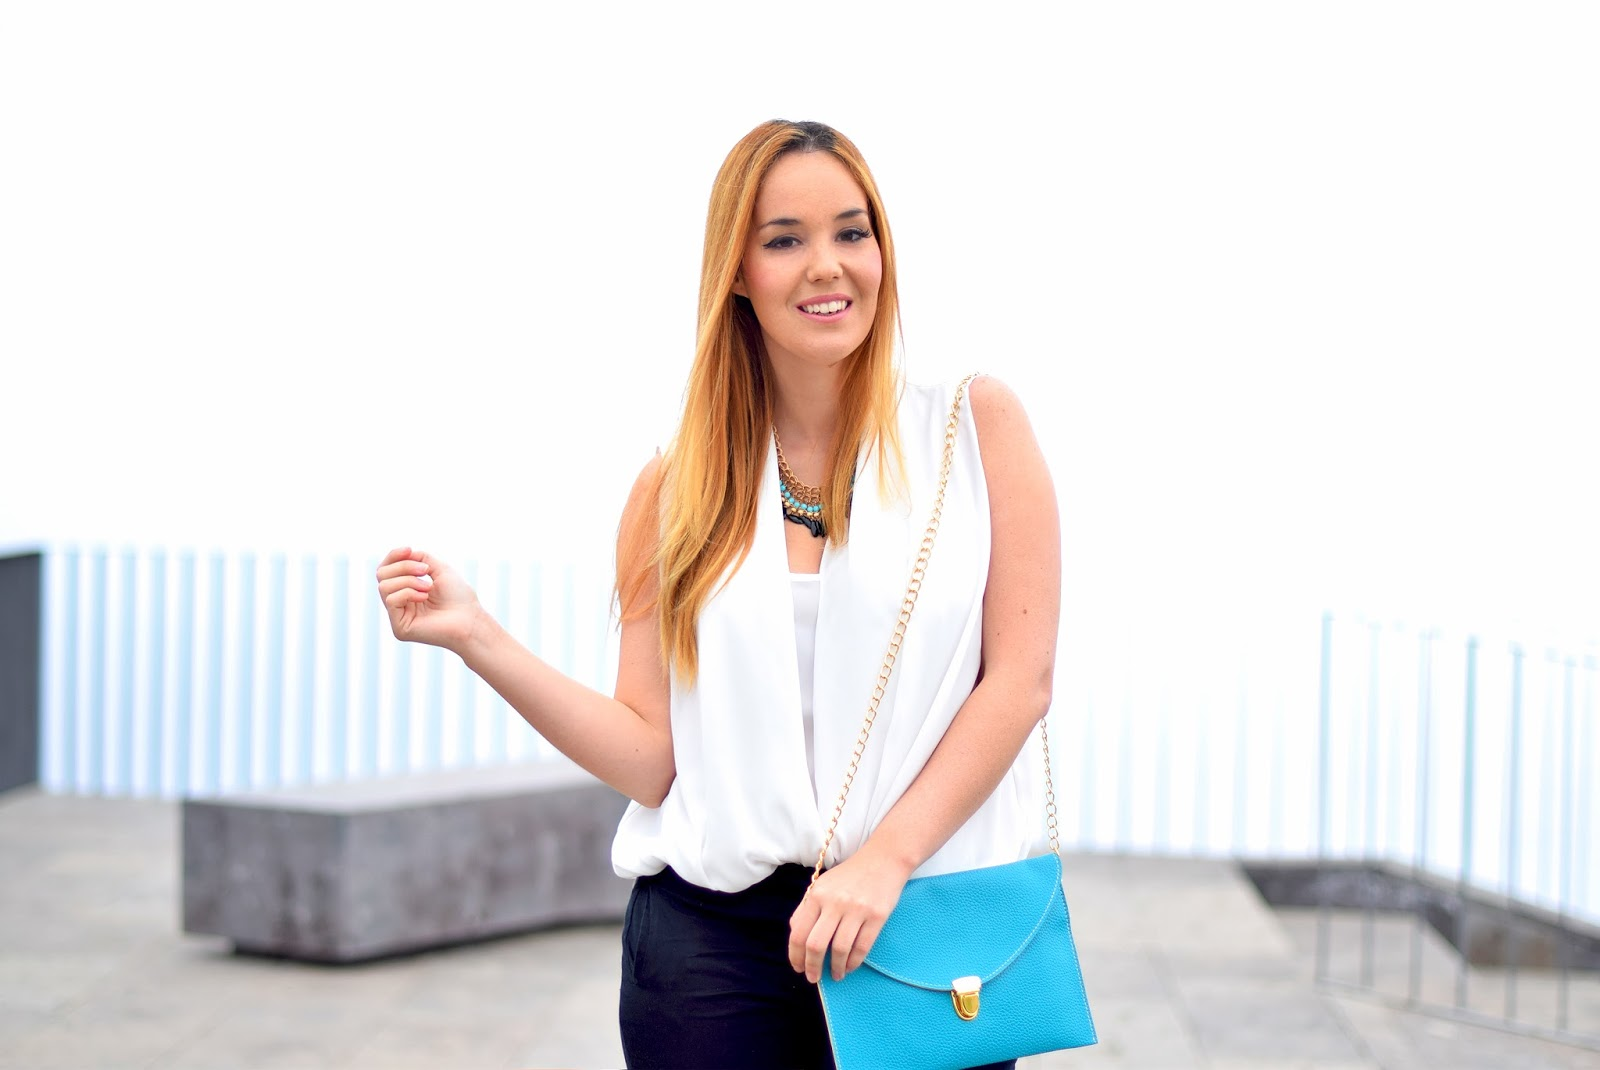 nery hdez, yesfor, primark, day to day look,